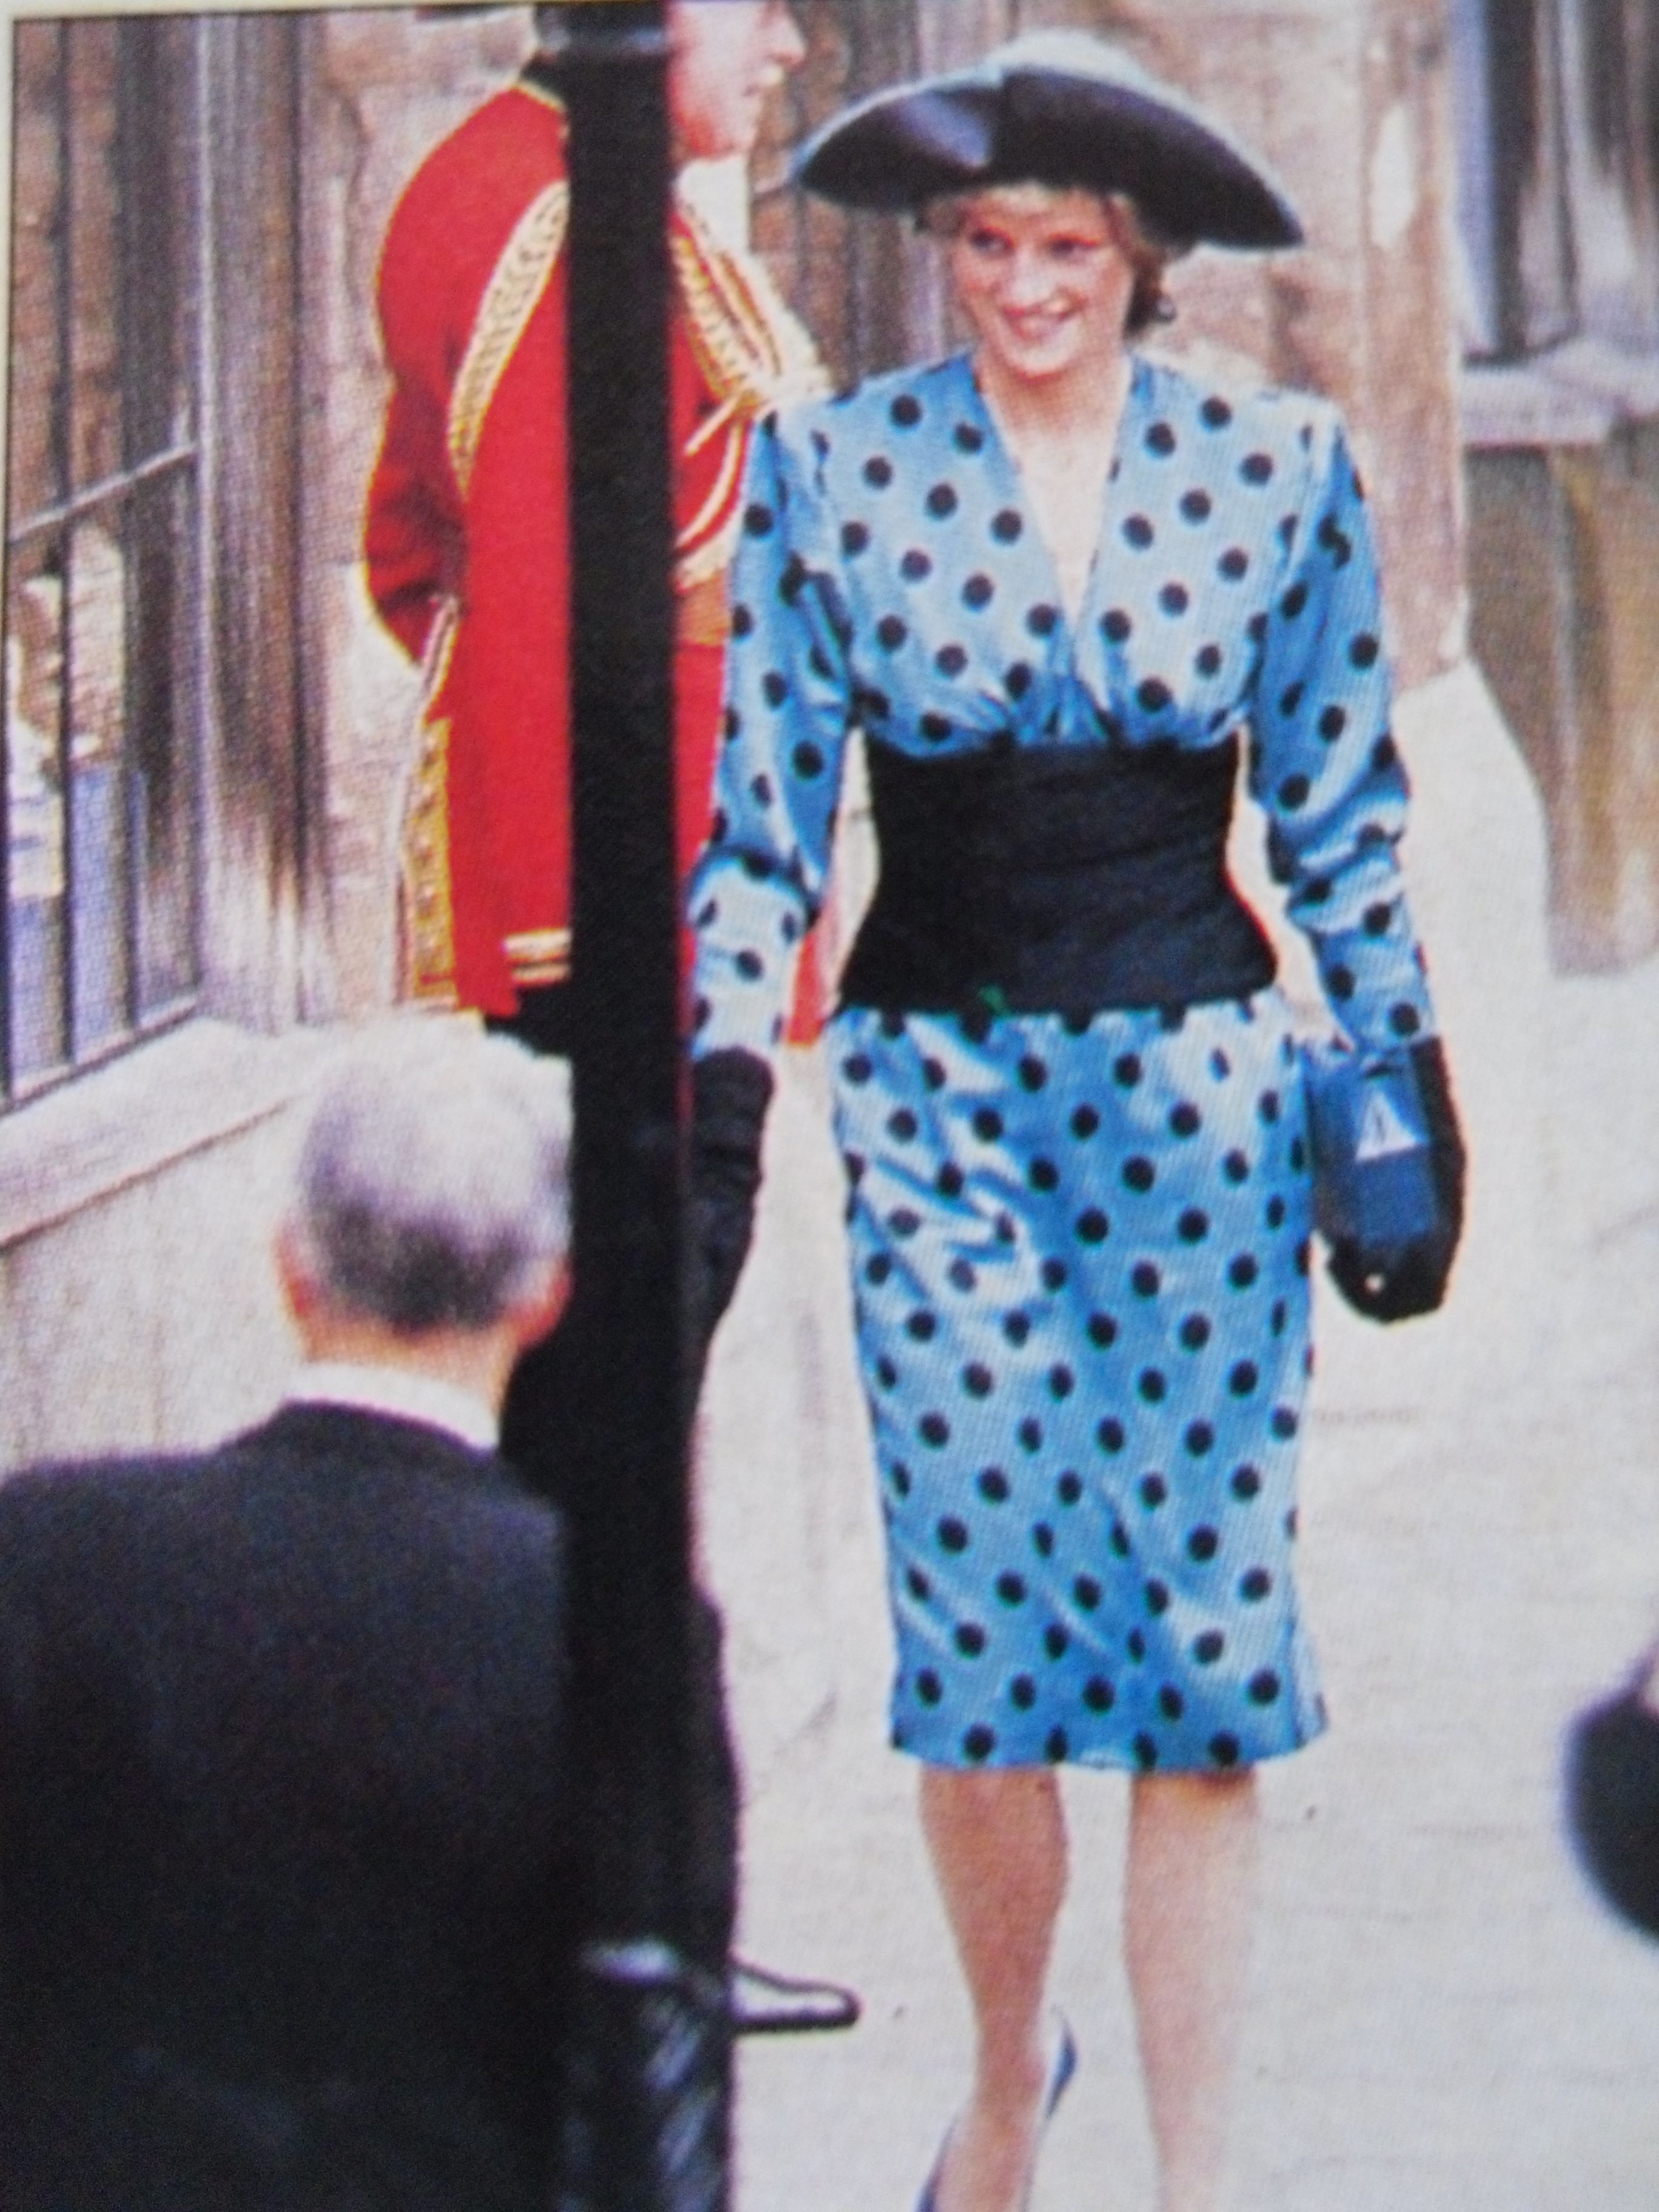 July 23. 1986 HRH Diana, Princess of Wales attending the